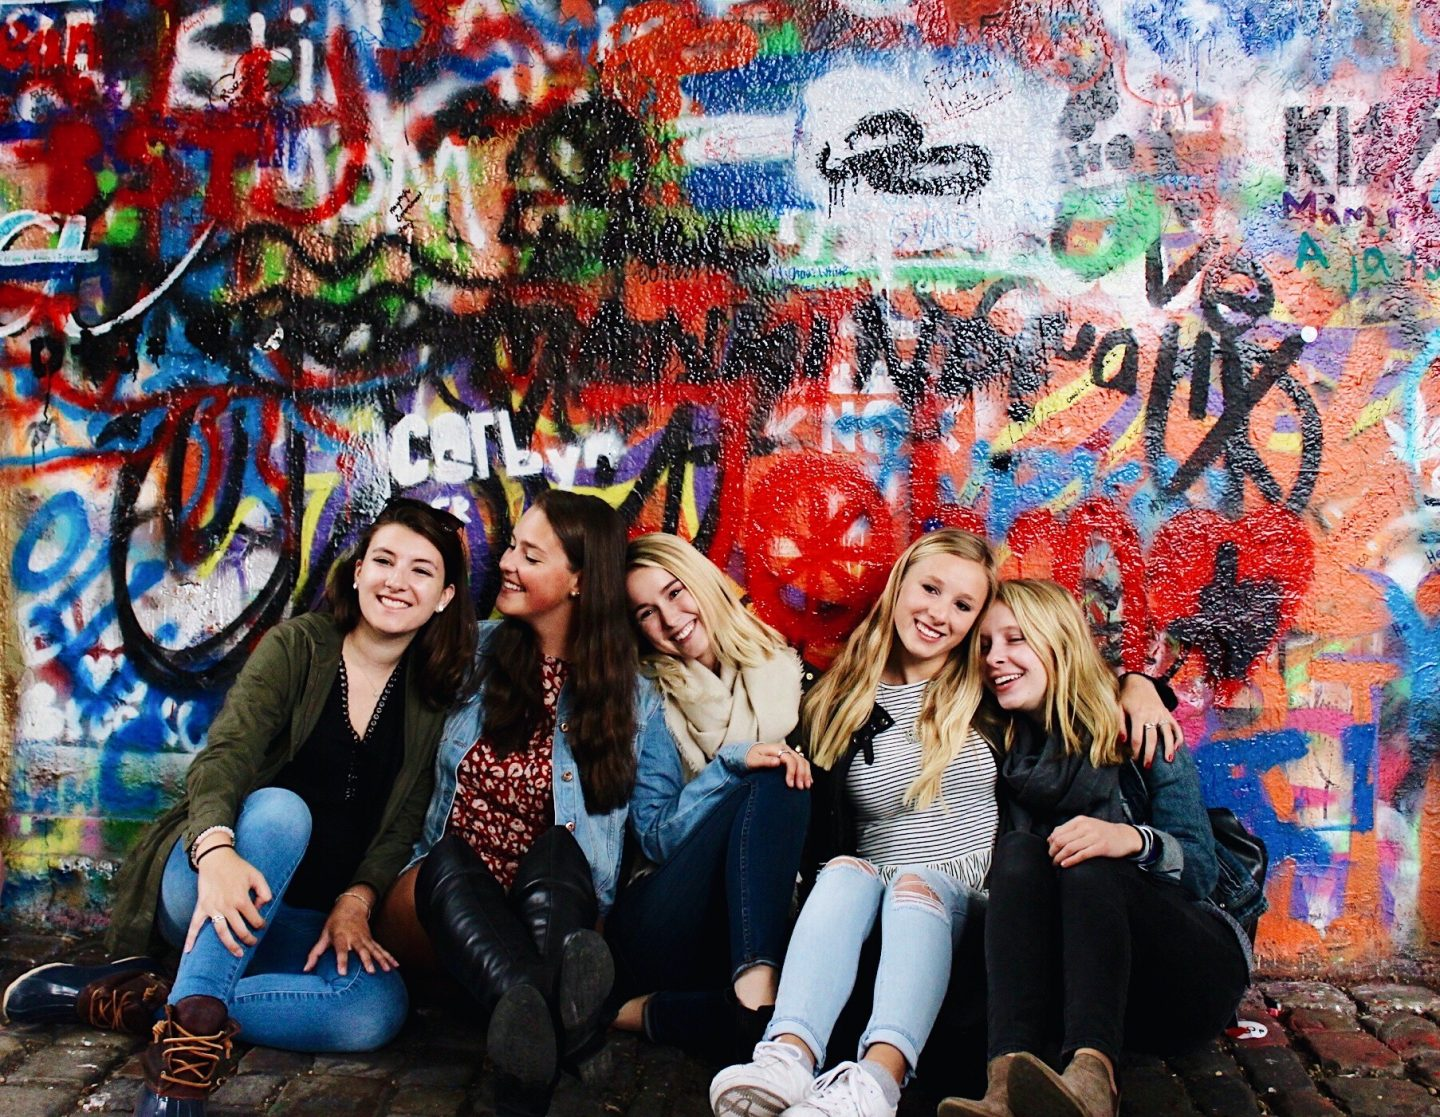 Posing in front of the John Lennon Wall in Prague!